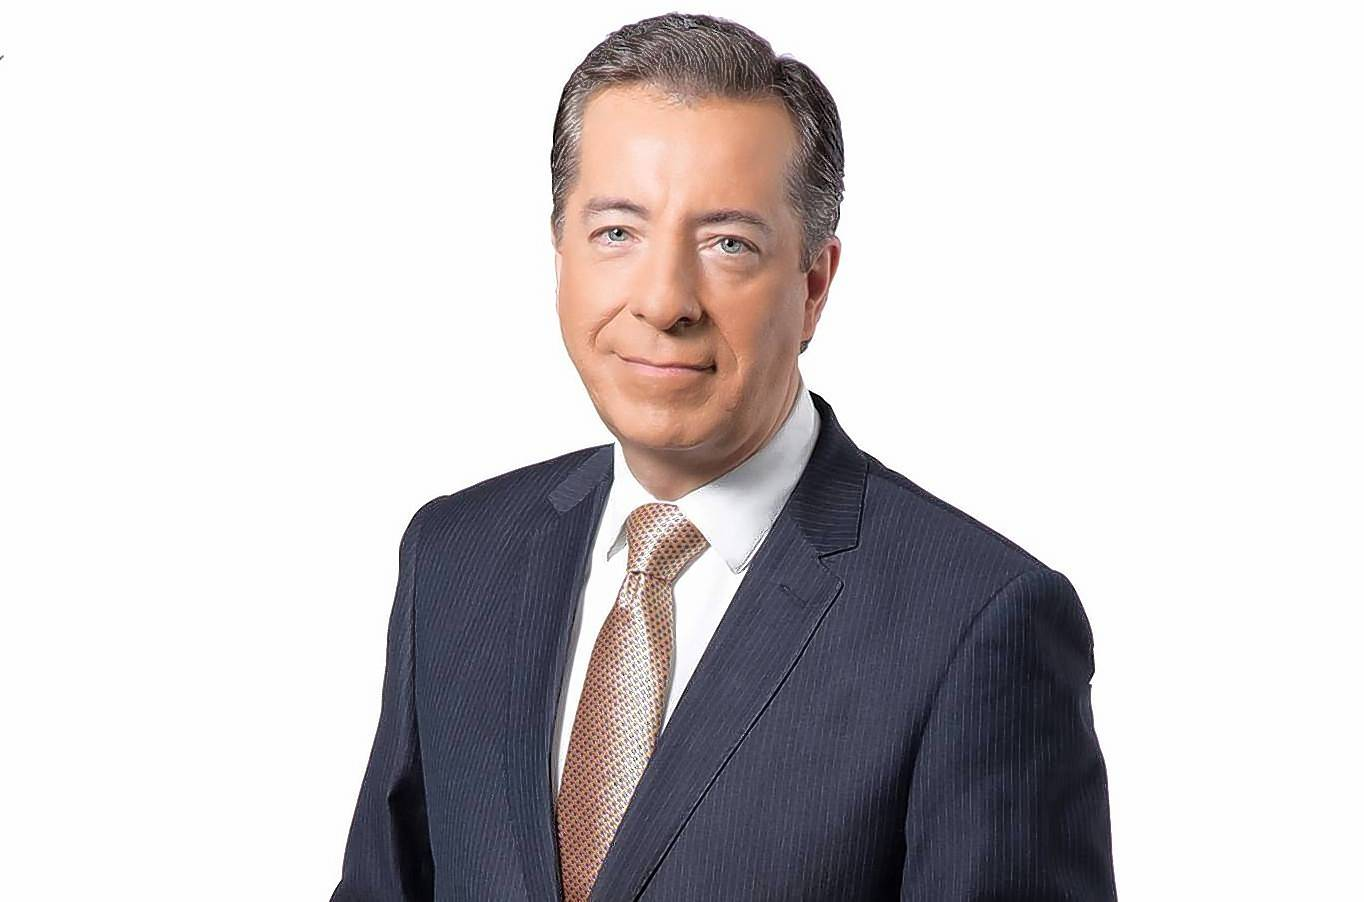 Courtesy of Univision ChicagoJorge Barbosa, one of Chicago's premier Spanish-language broadcast journalists for more than three decades, is stepping down as 5 and 10 p.m. news anchor at Univision WGBO-Channel 66.